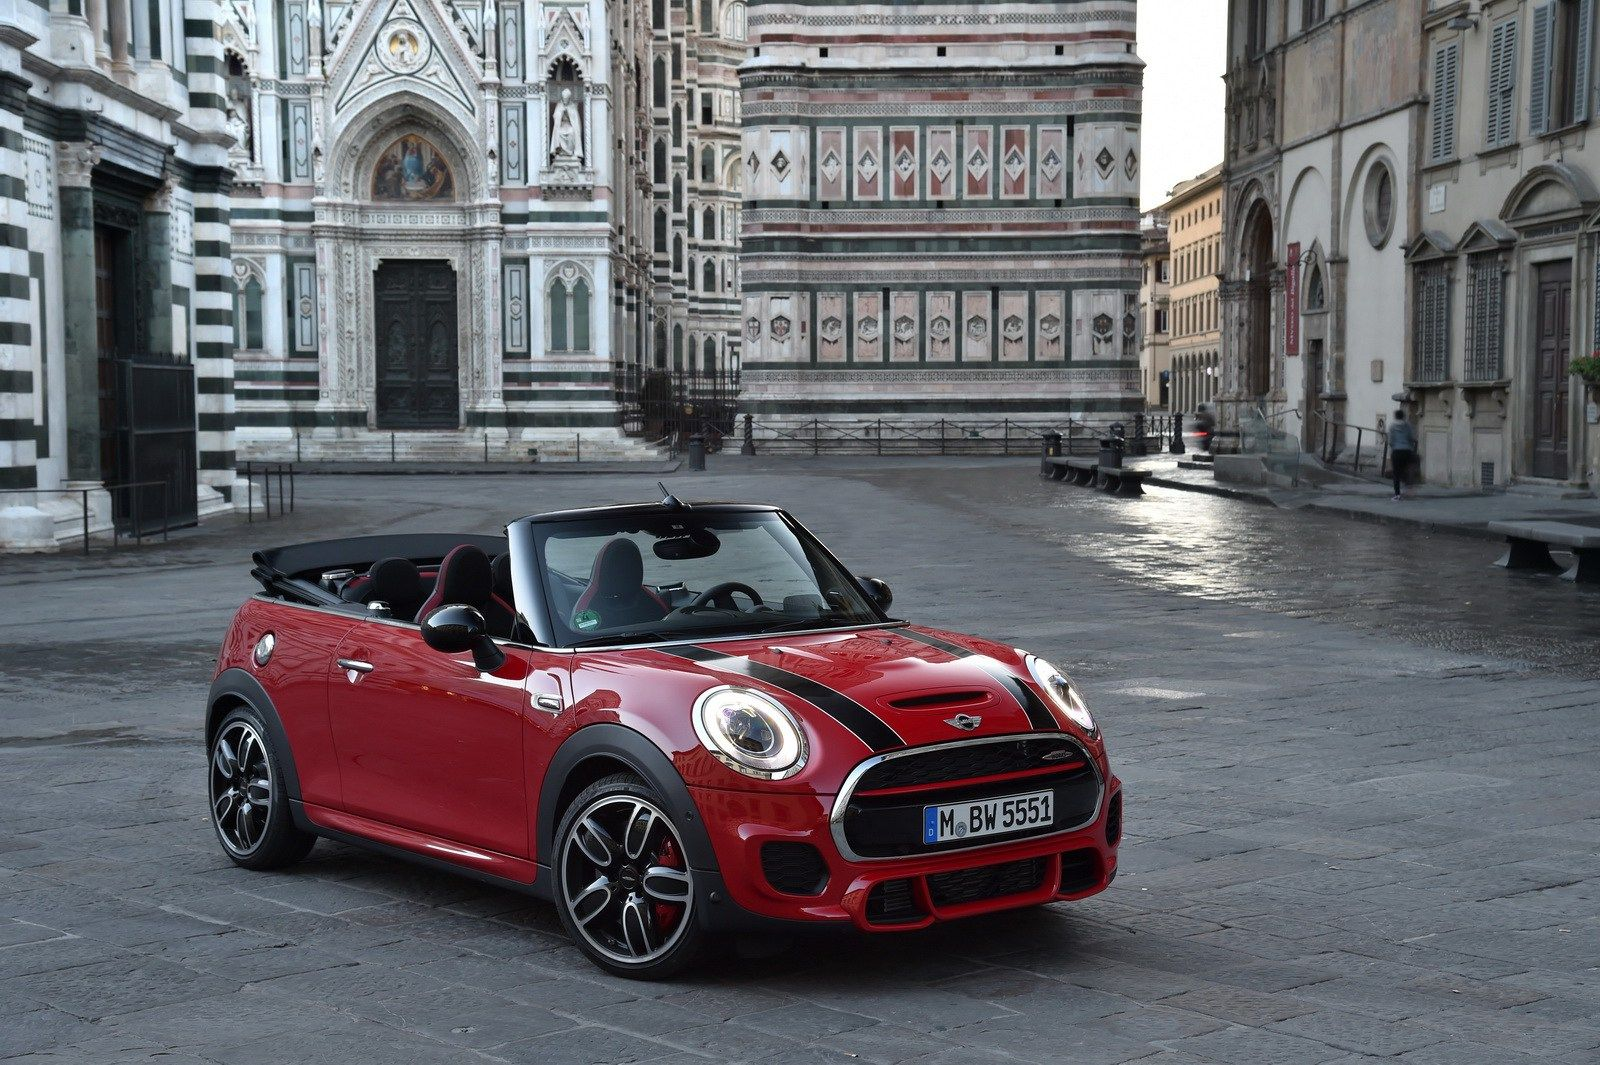 The new mini john cooper works convertible john cooper works now launches the second top athlete of the new model generation new mini john cooper works